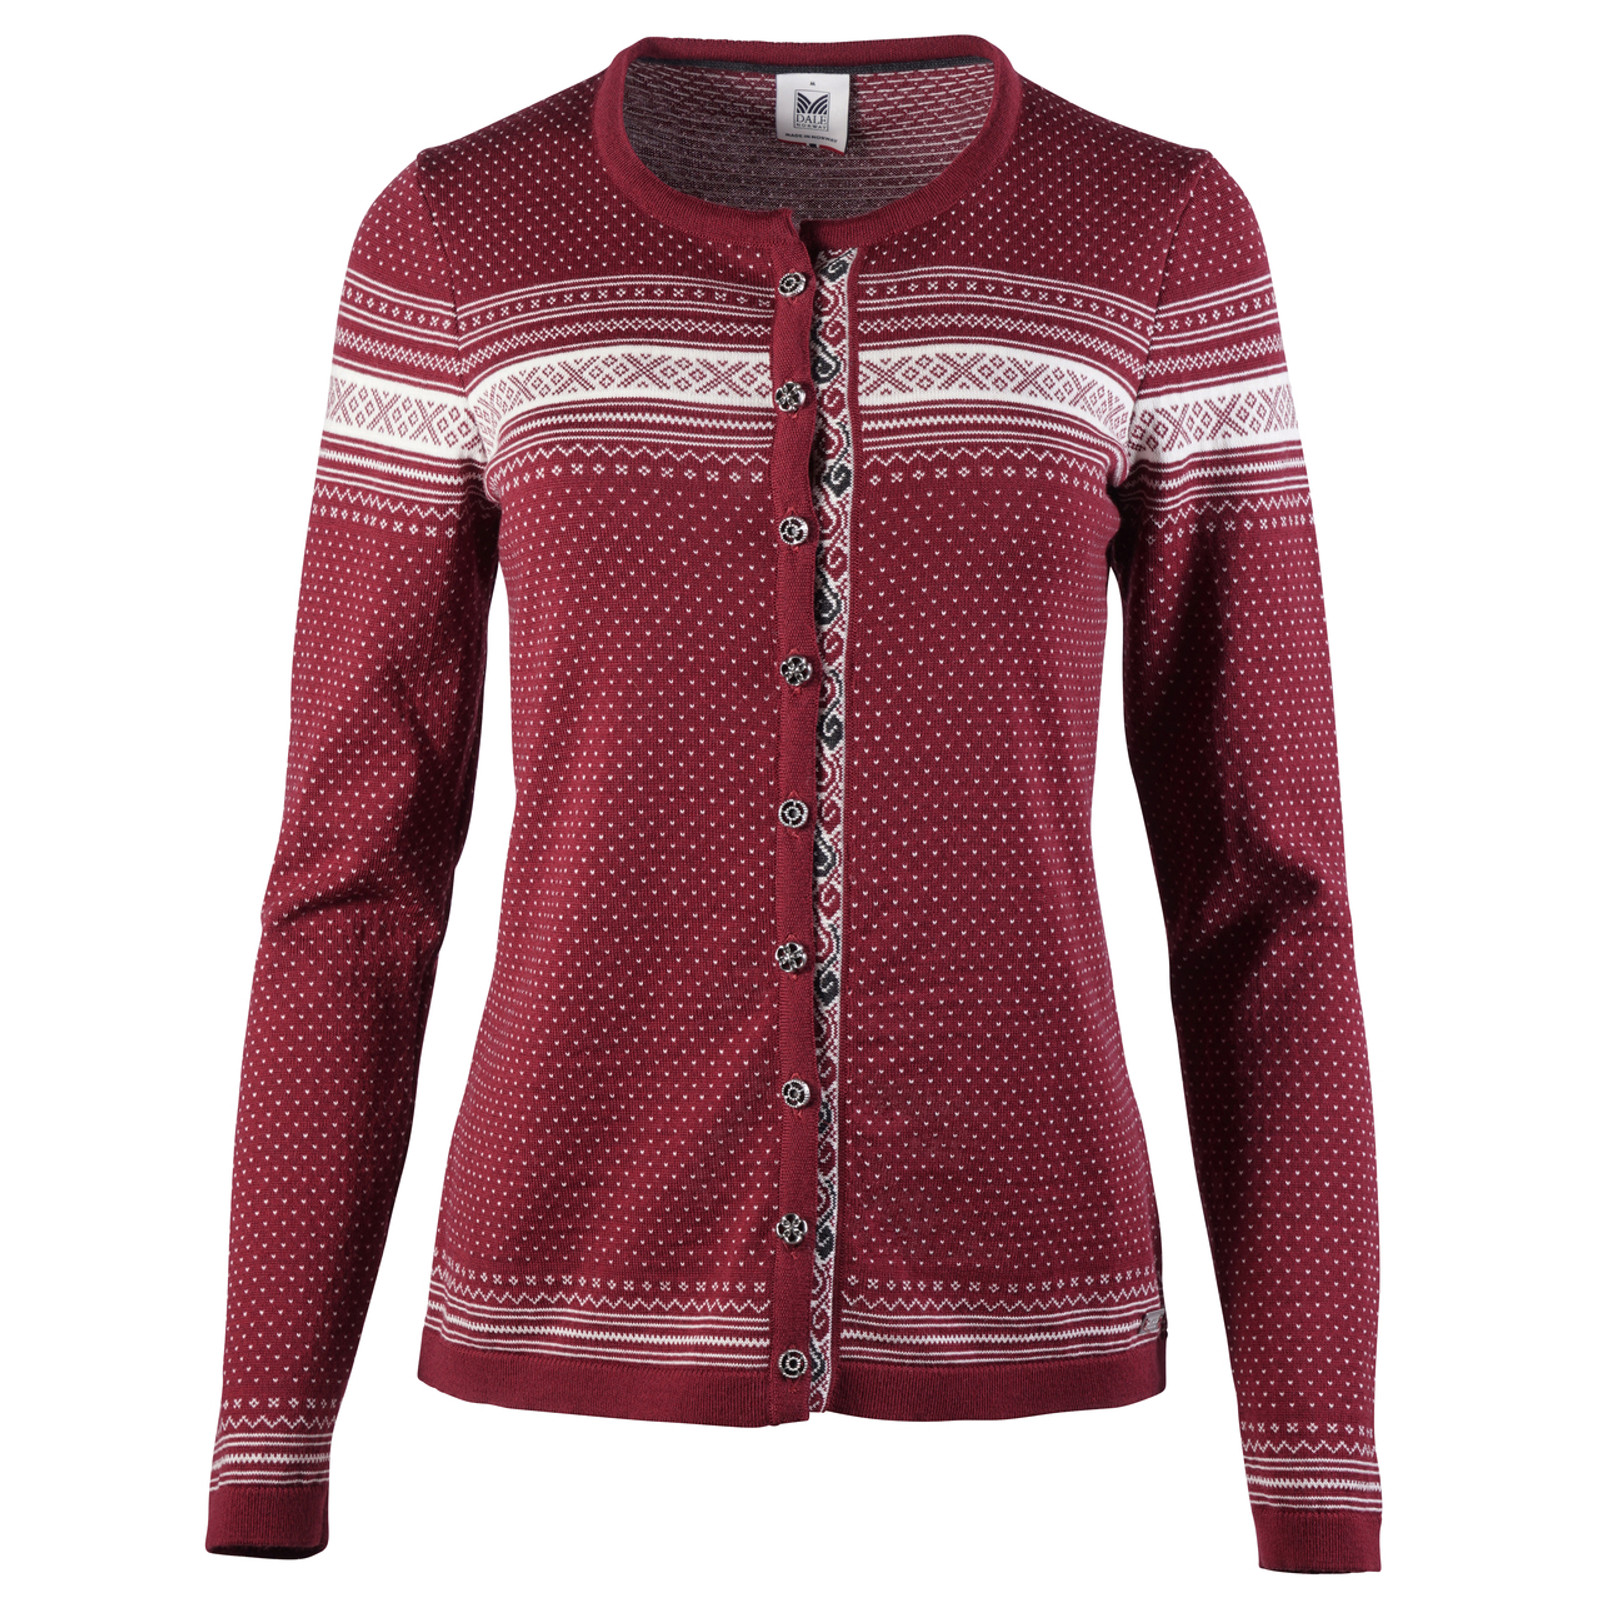 Dale of Norway Hedda Cardigan, Ladies in Ruby Melange/Off White/Dark Charcoal, 83401-V